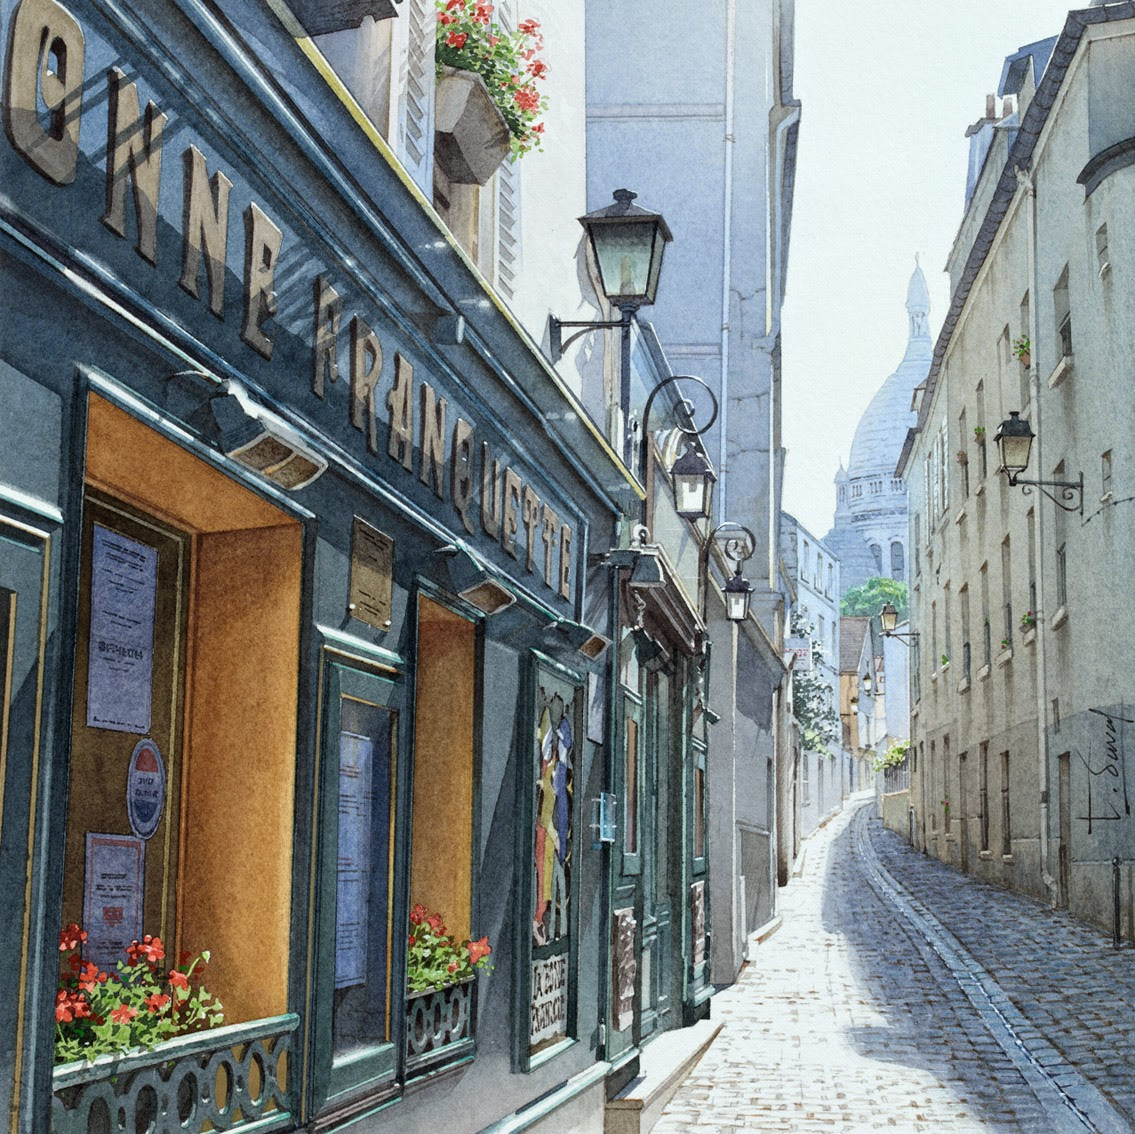 21-Montmartre-Thierry-Duval-Snippets-of Real-Life-in Watercolor-Paintings-www-designstack-co